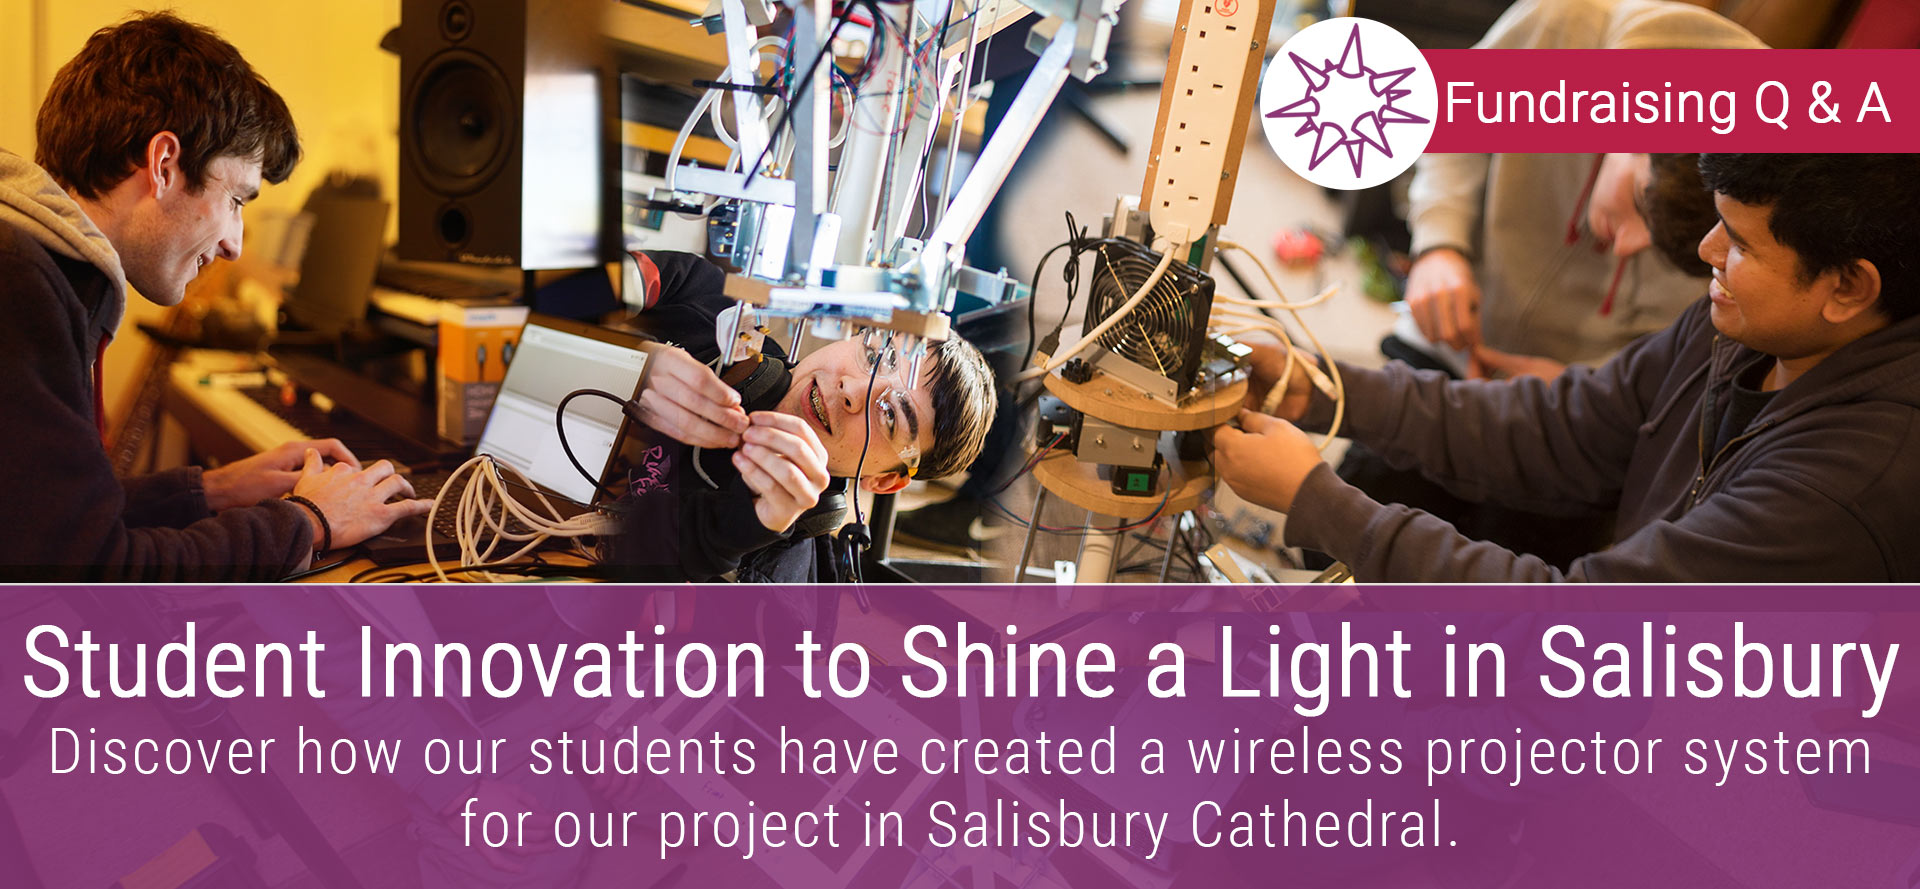 Student Innovation Shines A Light in Salisbury